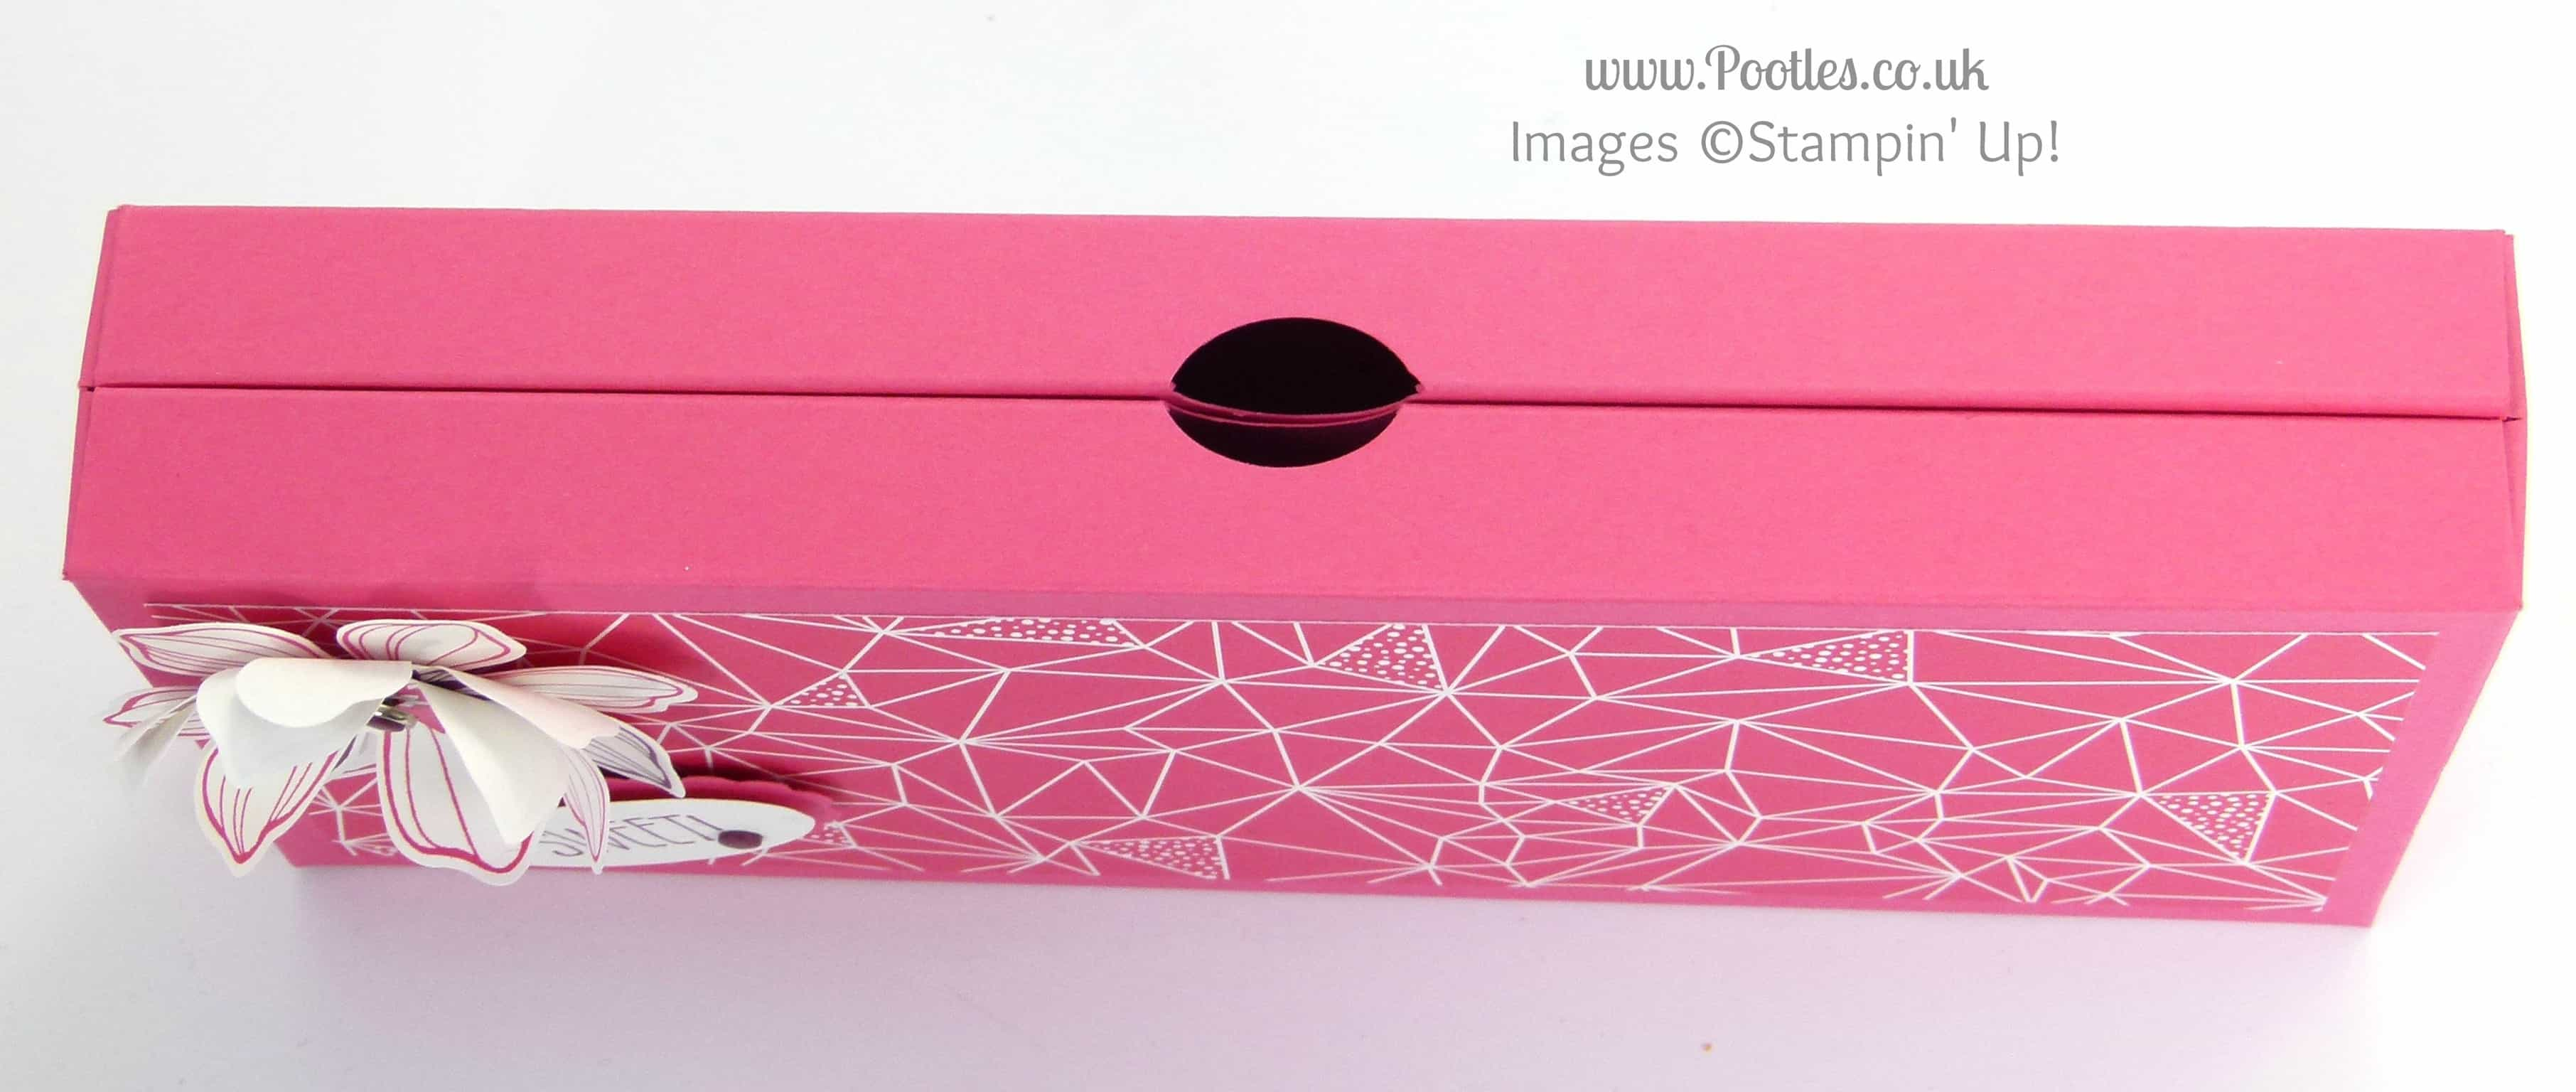 Stampin' Up! UK Demonstrator Pootles - Large Thin Clever Close Box Tutorial Top Closed